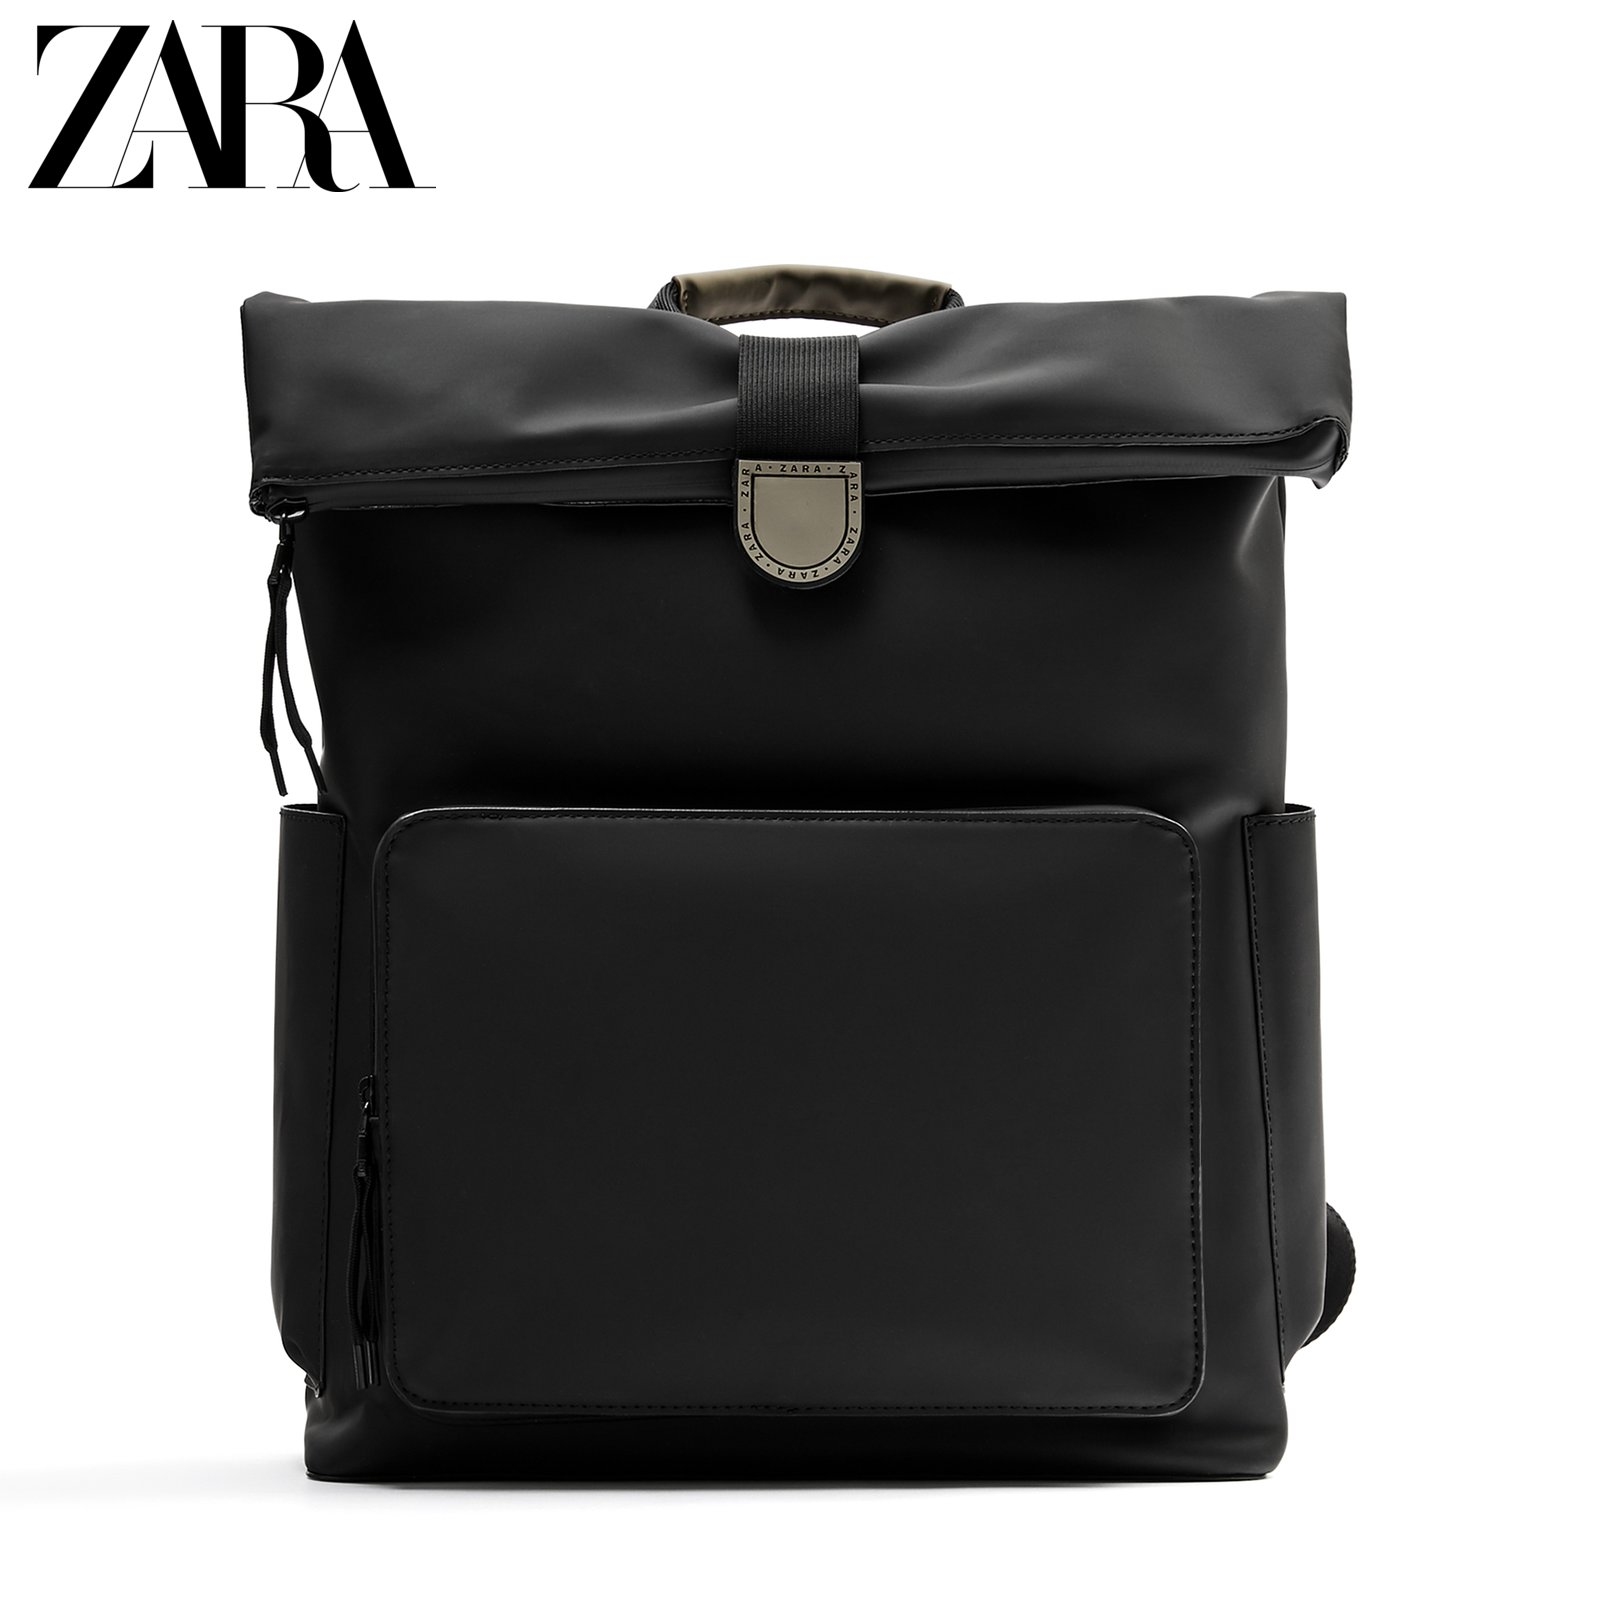 ZARA new men's bag black compact large capacity portable practical backpack tide bag 13215620040